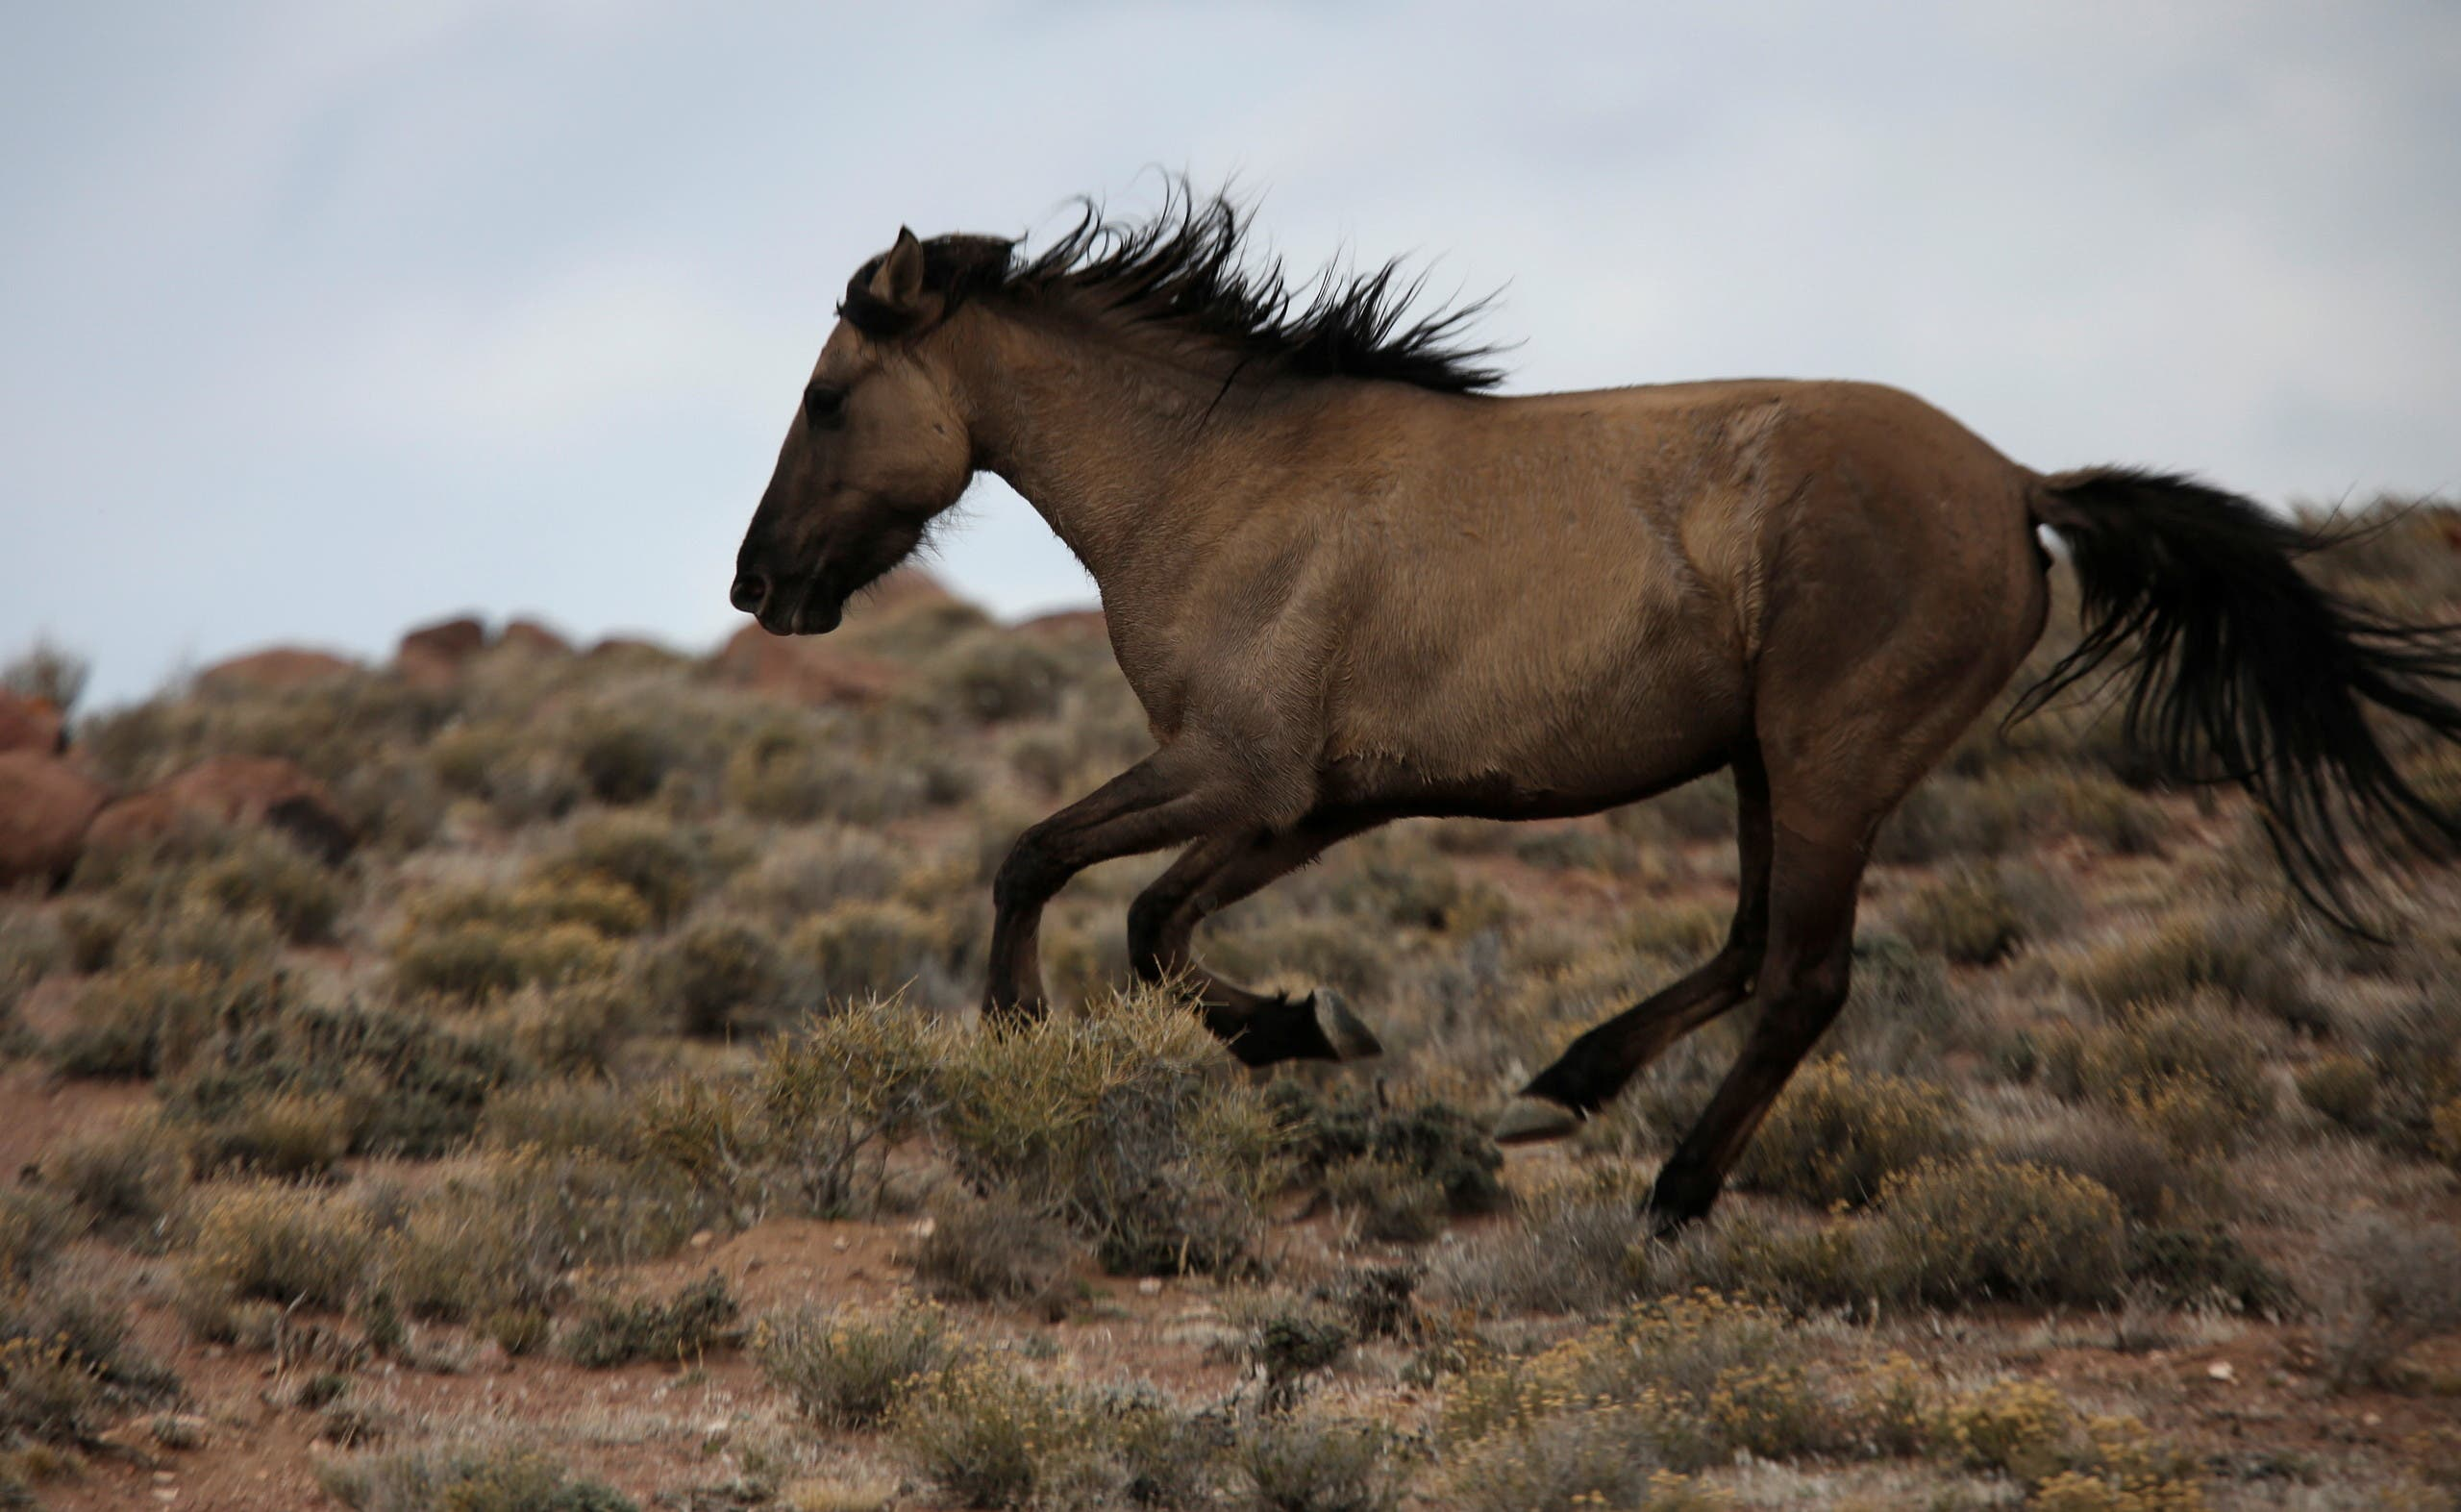 A wild horse escapes from a Bureau of Land Management (BLM) gather trap along Highway 21 near the Sulphur Herd Management Area south of Garrison, Utah, February 26, 2015. (File Photo: Reuters)